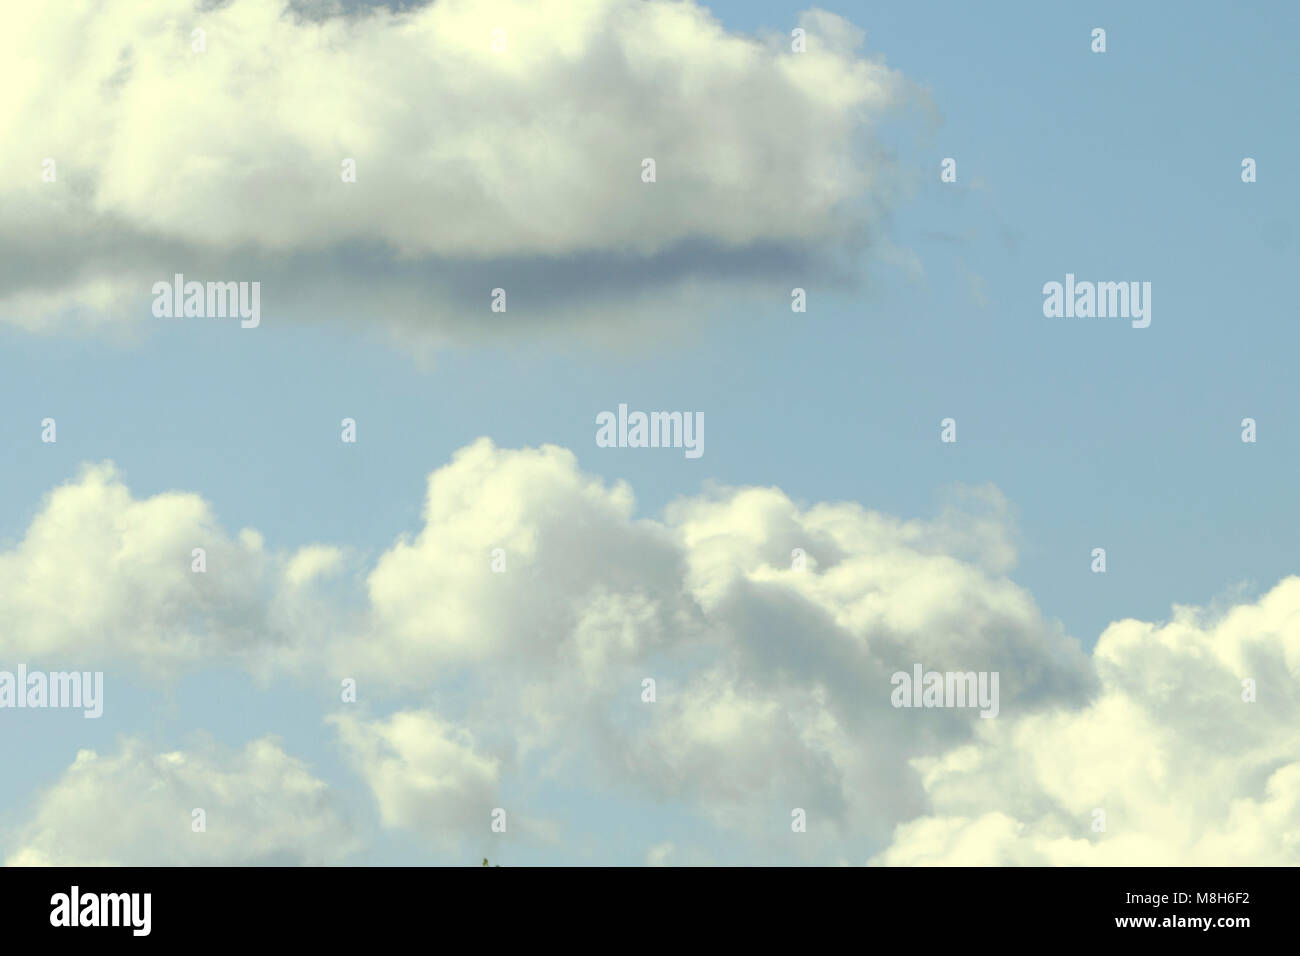 background of blue sky with few clouds - Stock Image